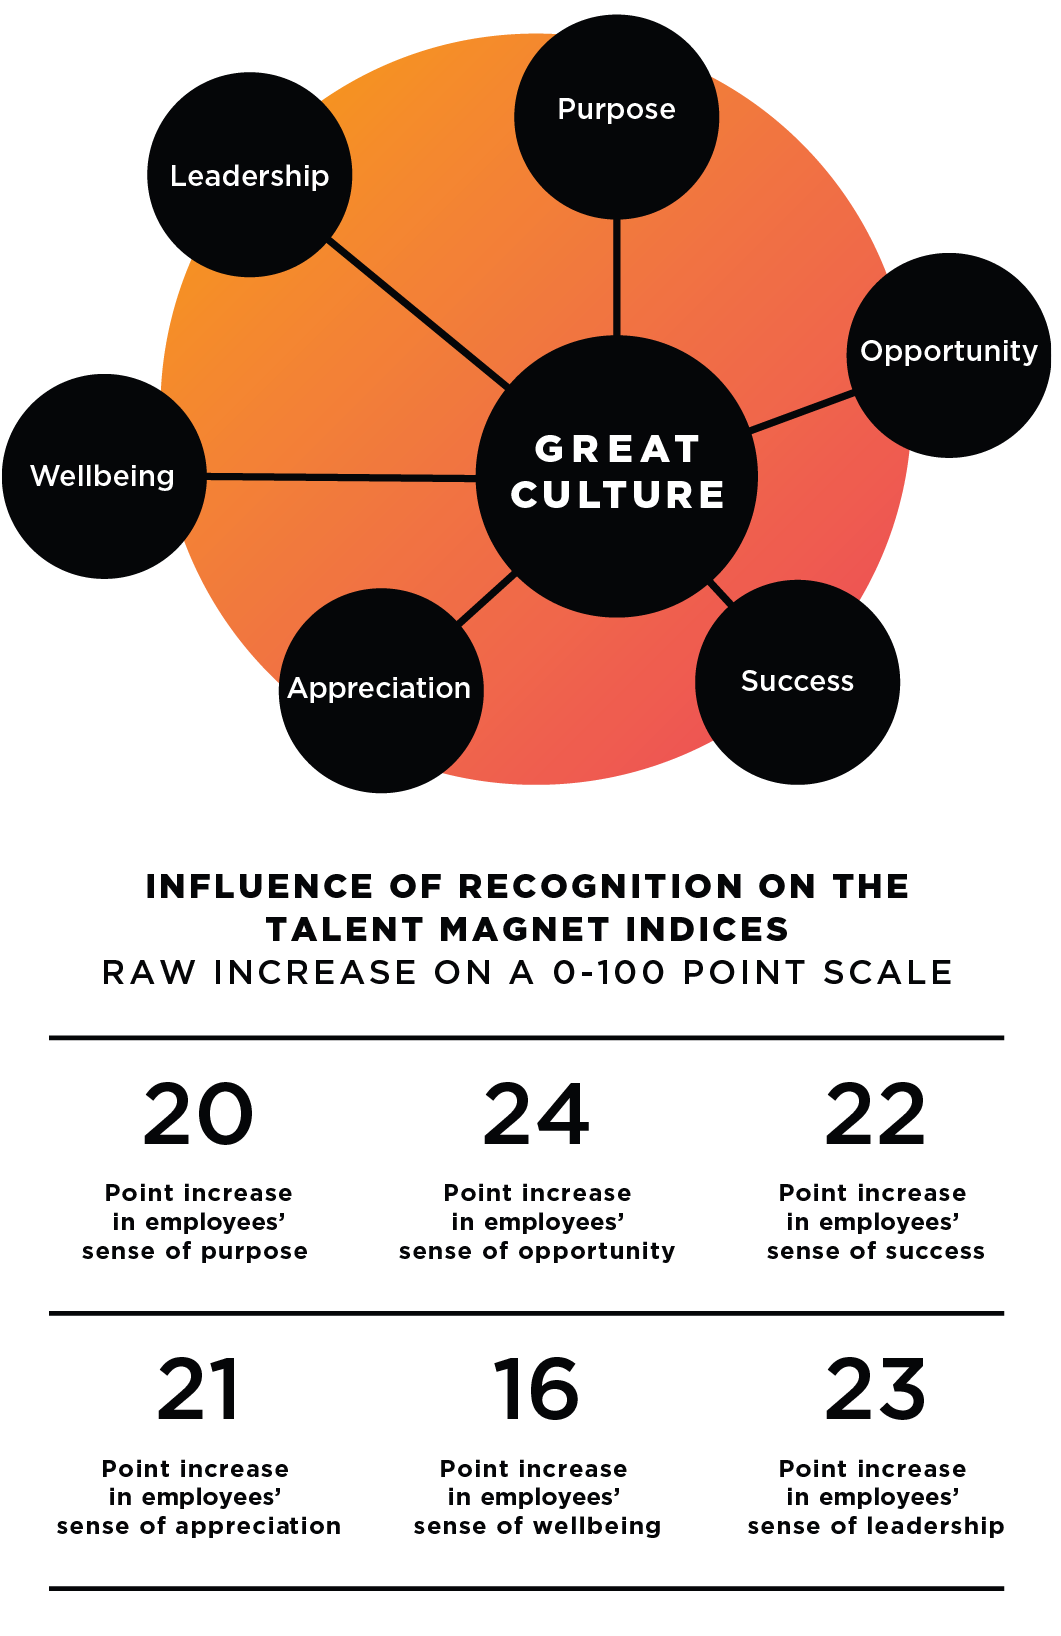 After interviewing 15,000 employees, O.C. Tanner determined that great workplace culture consists of purpose, leadership, wellbeing, appreciation, success, and opportunity. When recognition is present O.C. Tanner recorded raw increase on a 0-100 scale in each talent magnet. 20 point increase in employee sense of purpose. 24 increase in employee's sense of opportunity. 22 point increase in employees' sense of success. 21 point increase in employees' sense of appreciation. 16 point increase in employees' sense of wellbeing. 23 point increase in employees' sense of leadership.